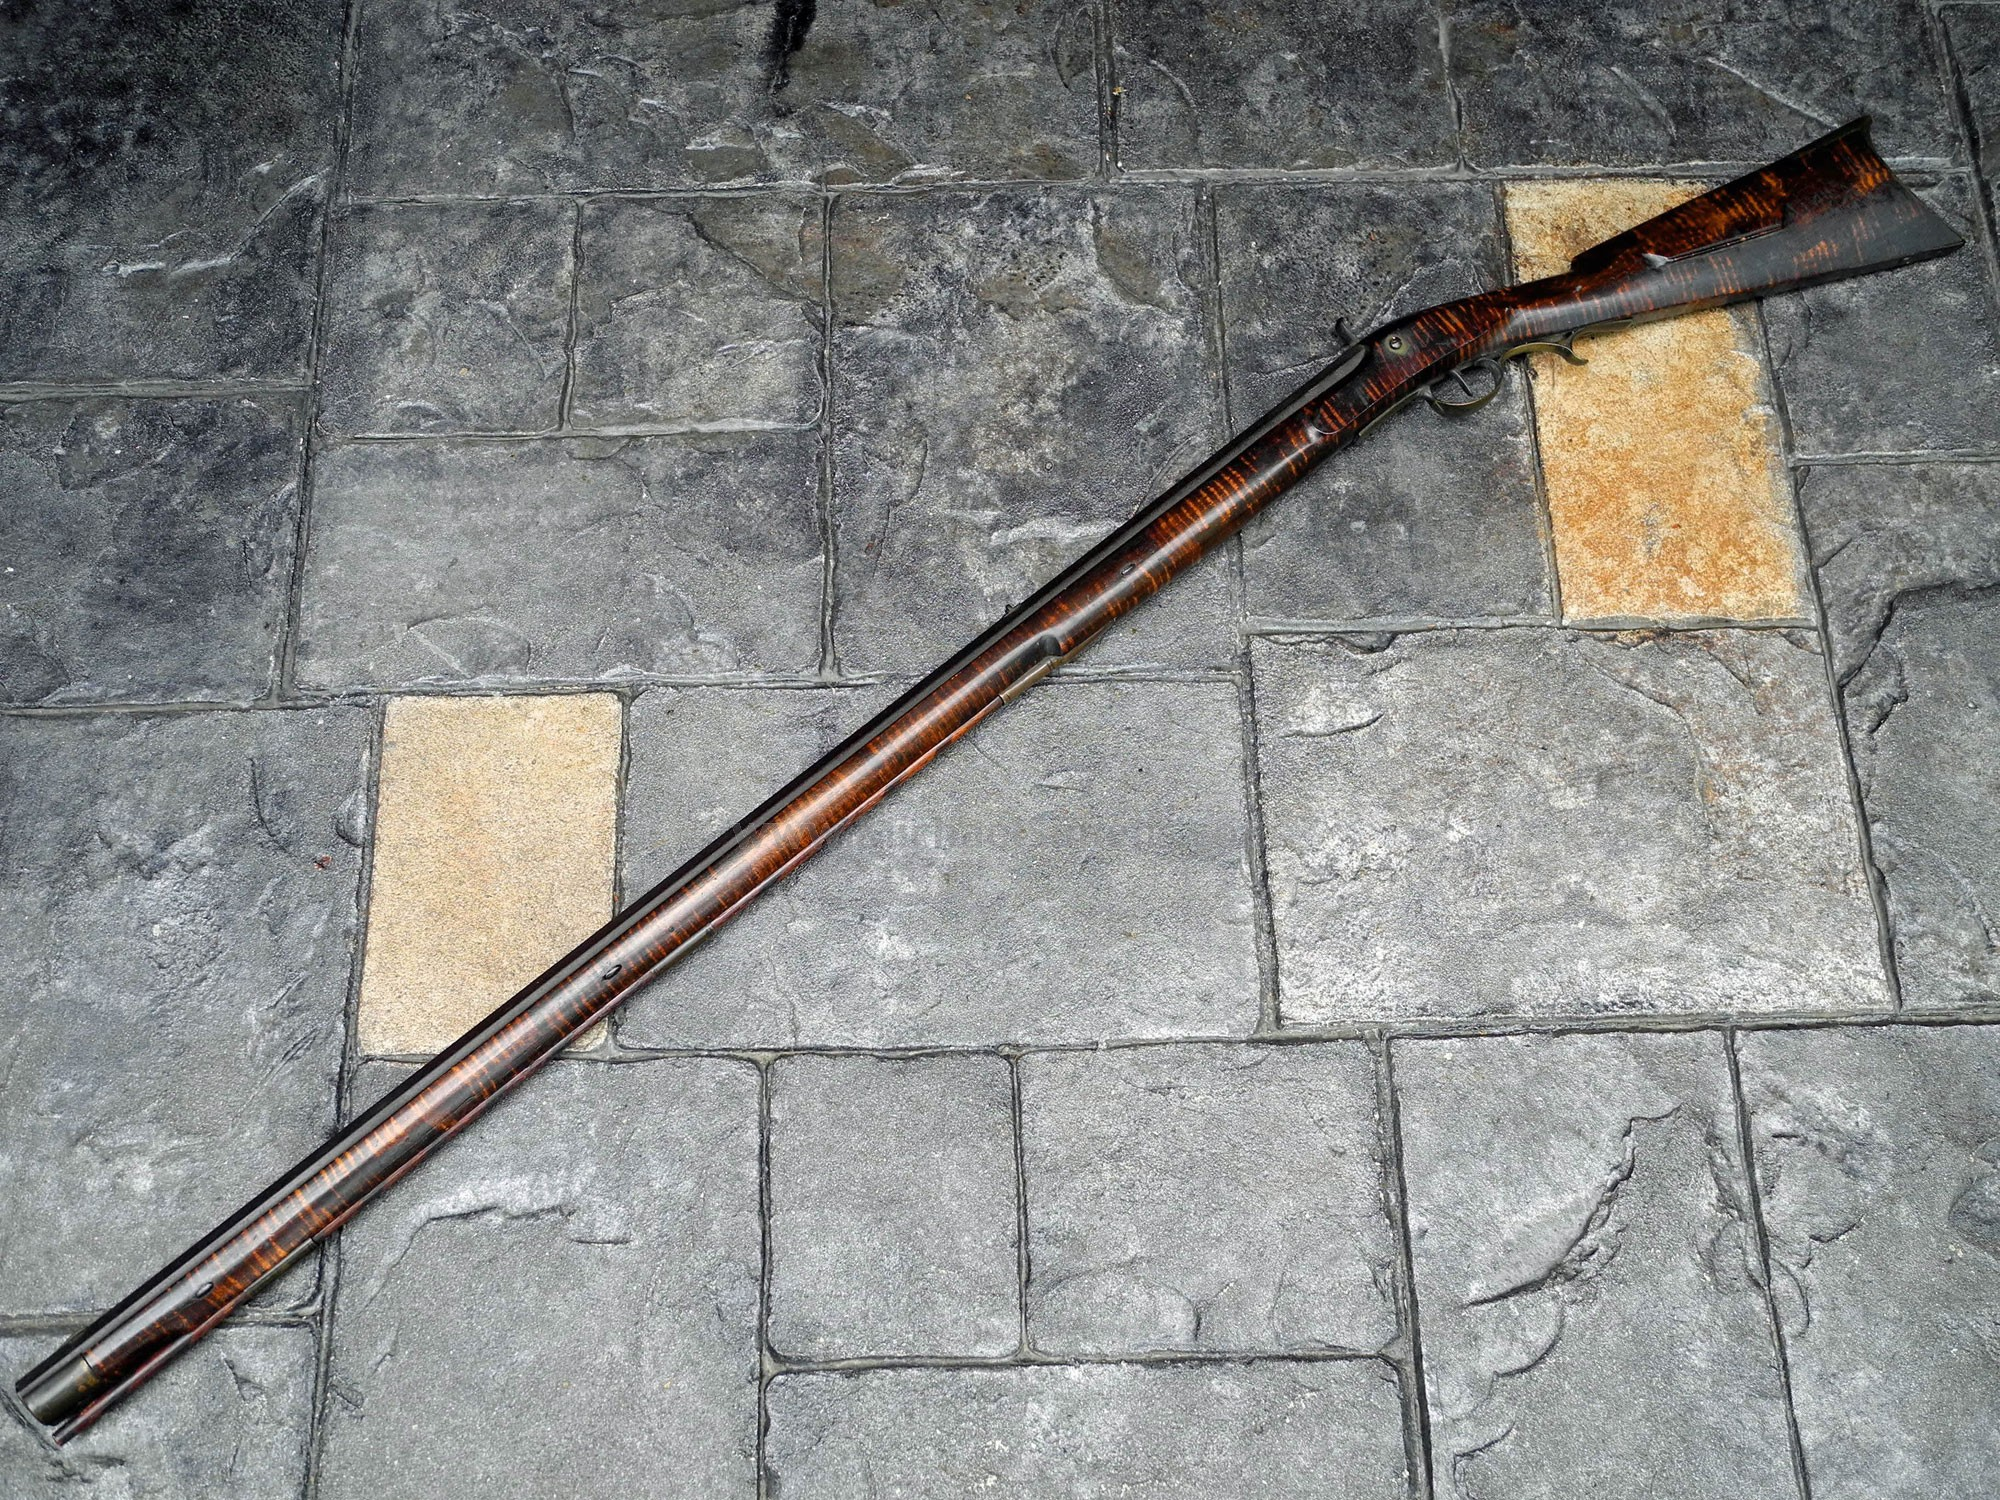 INDIAN OR FUR TRADE RIFLE BY DICKERT & GILL FOR SALE.